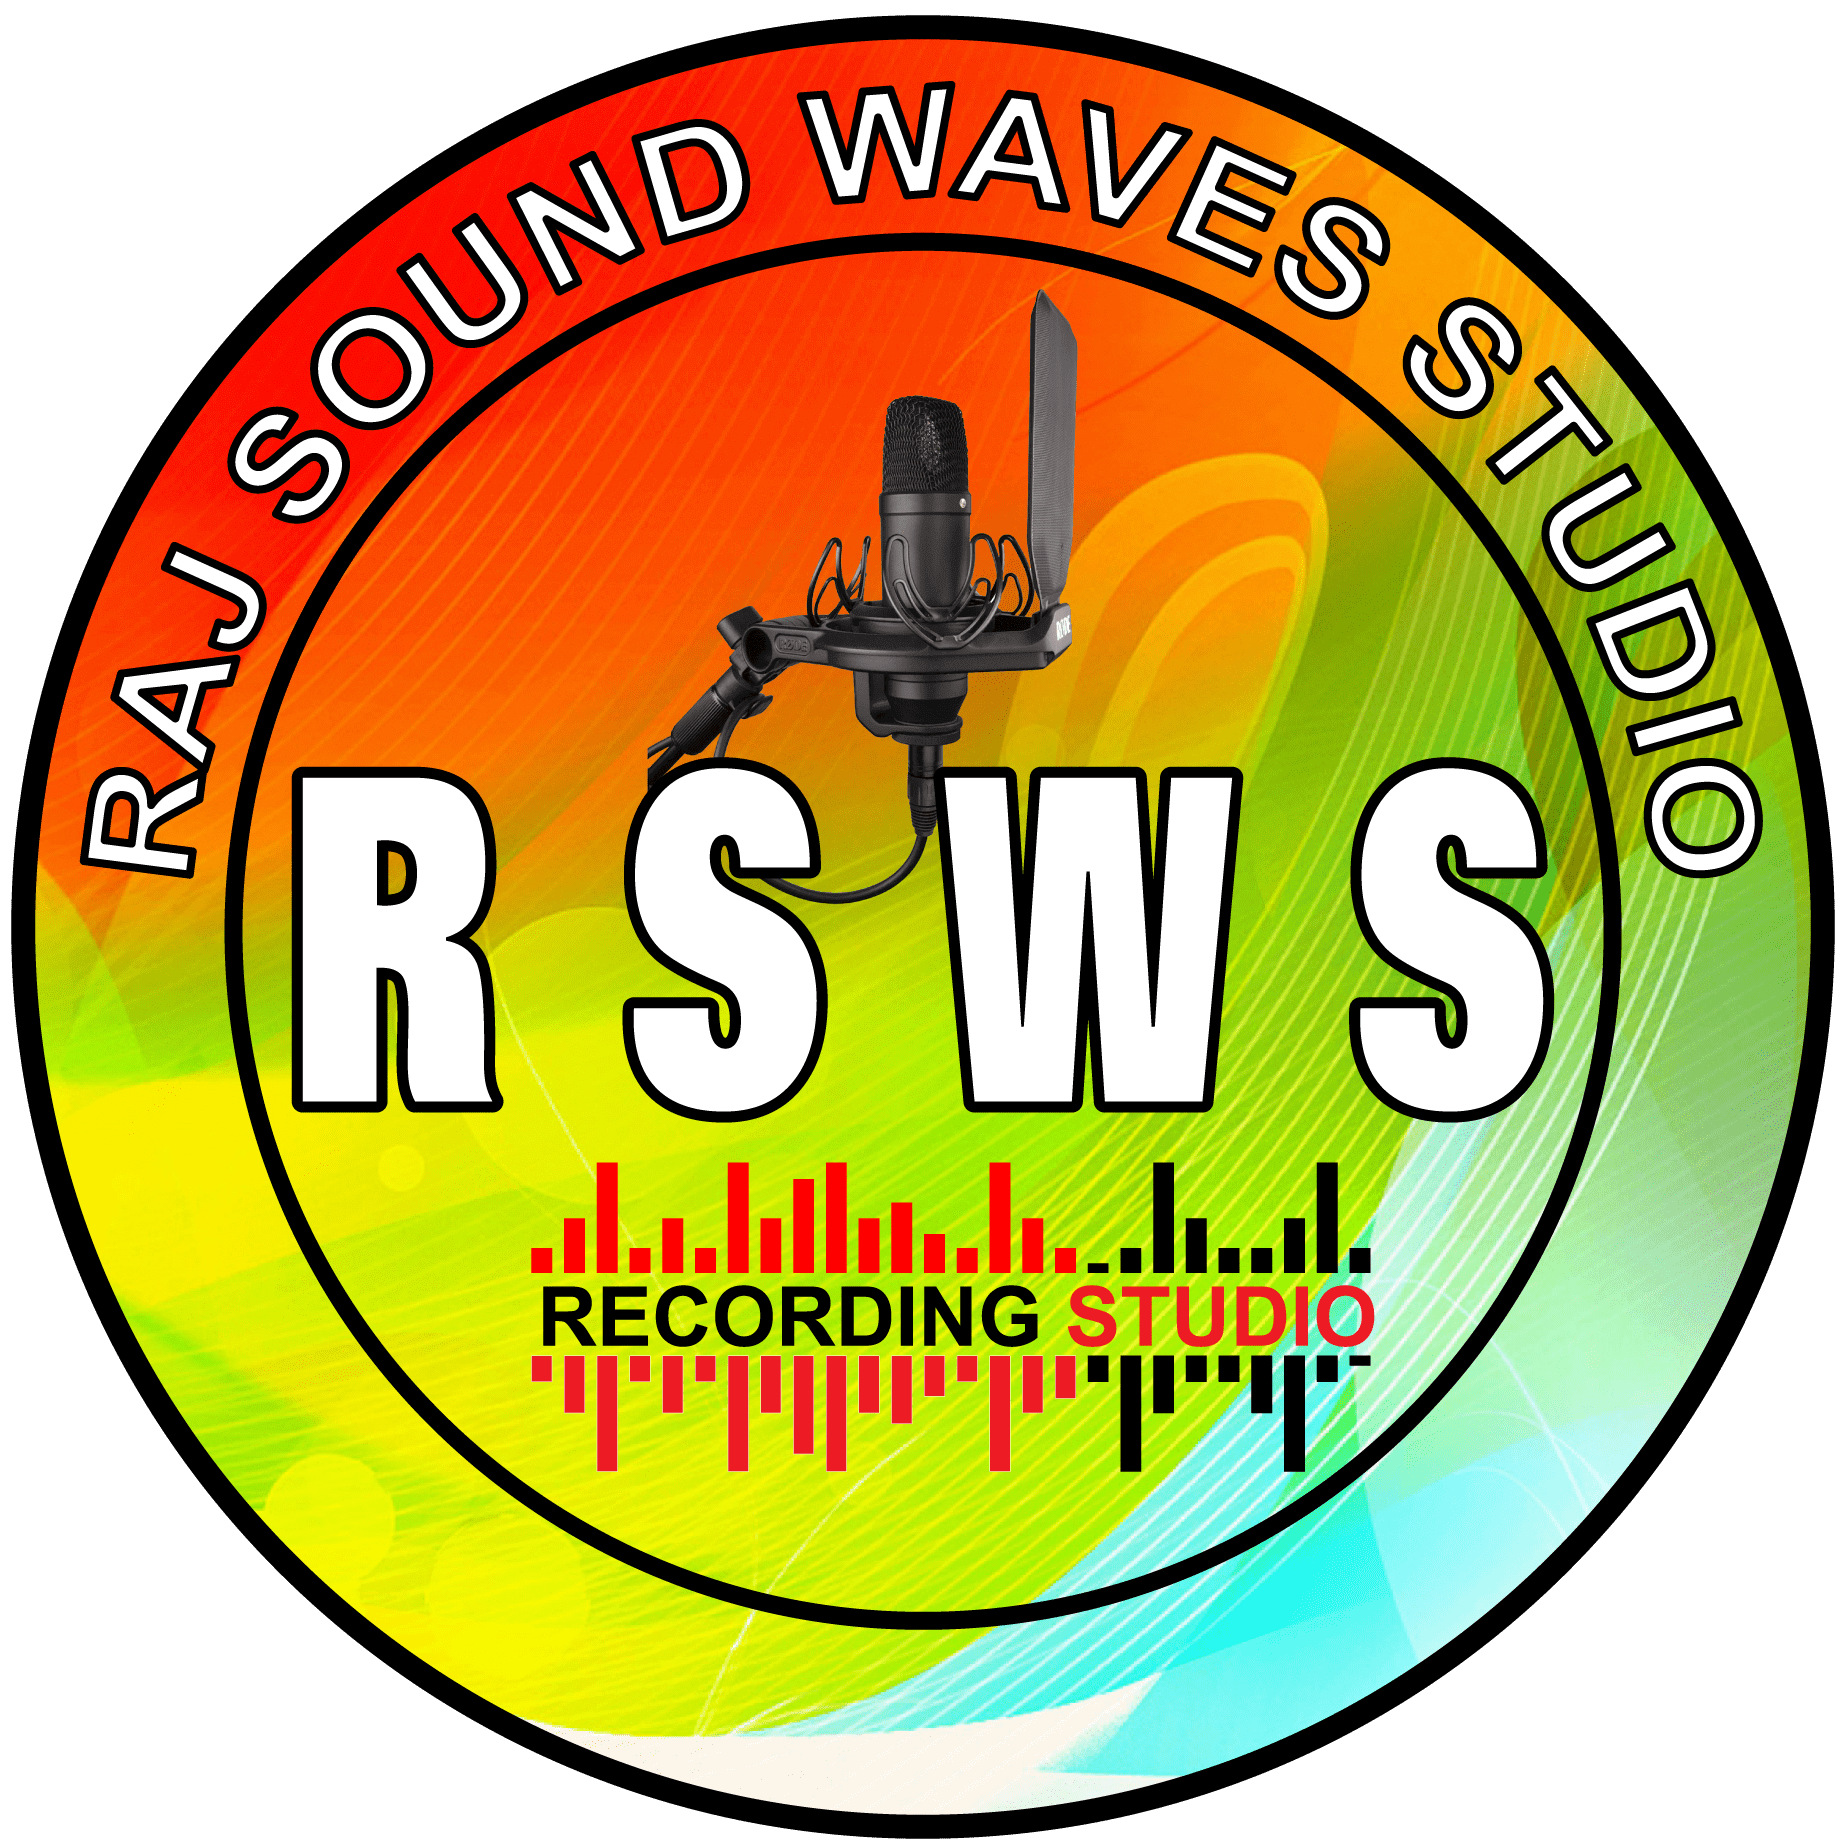 Raj Sound waves Studio